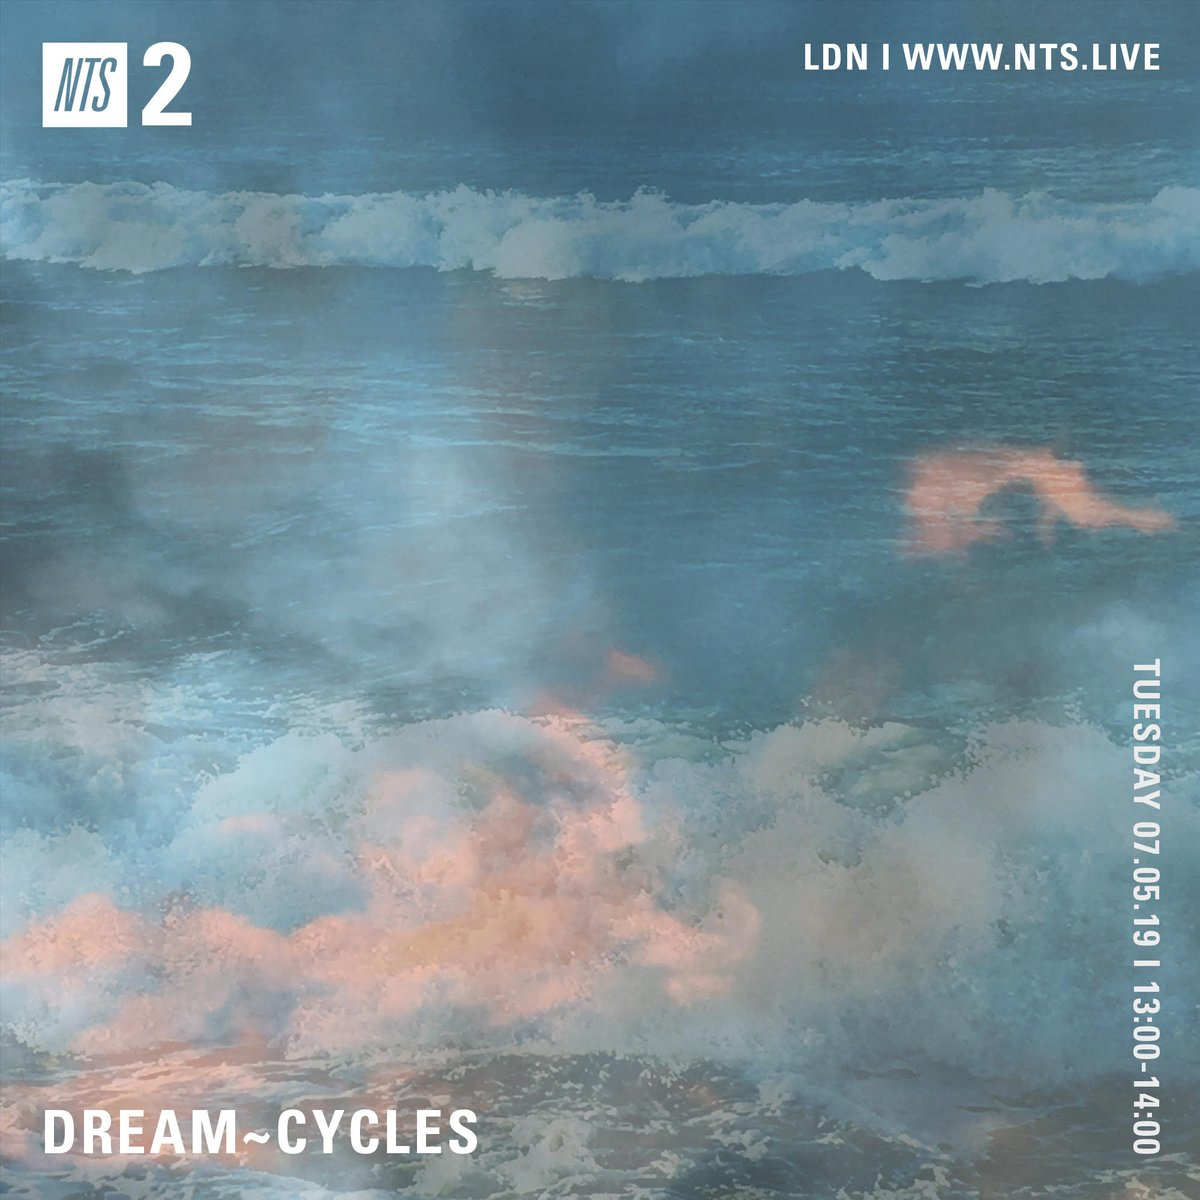 DreamCycles (@Dreamcycless) | Twitter